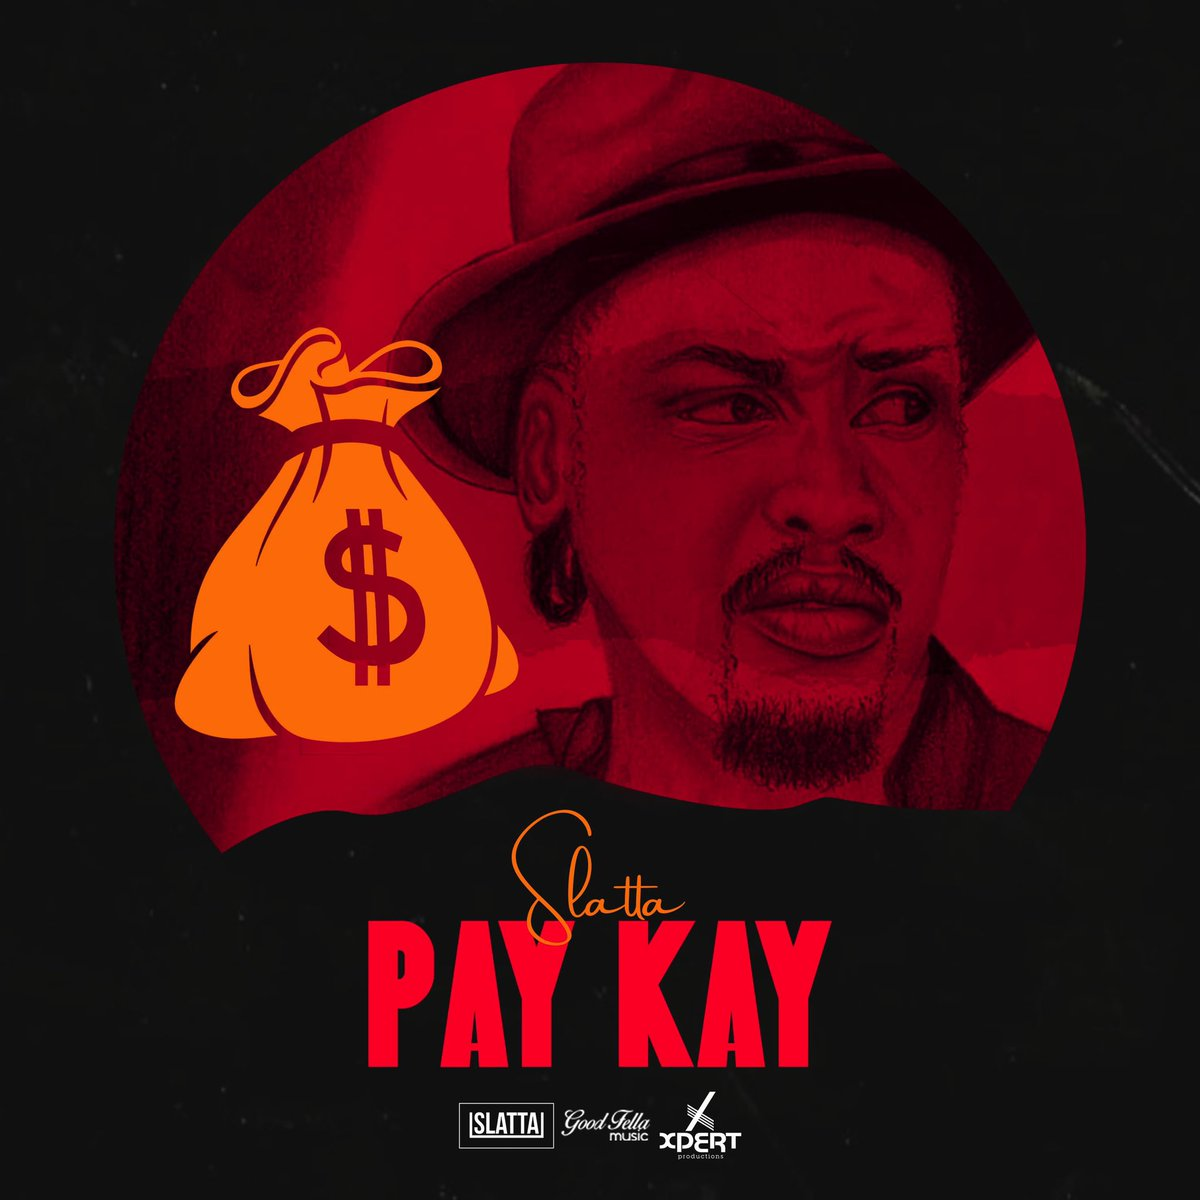 Been a while since I put out something, gonna change that this Friday #PayKay #NewMusic pic.twitter.com/Njmw8kpejc